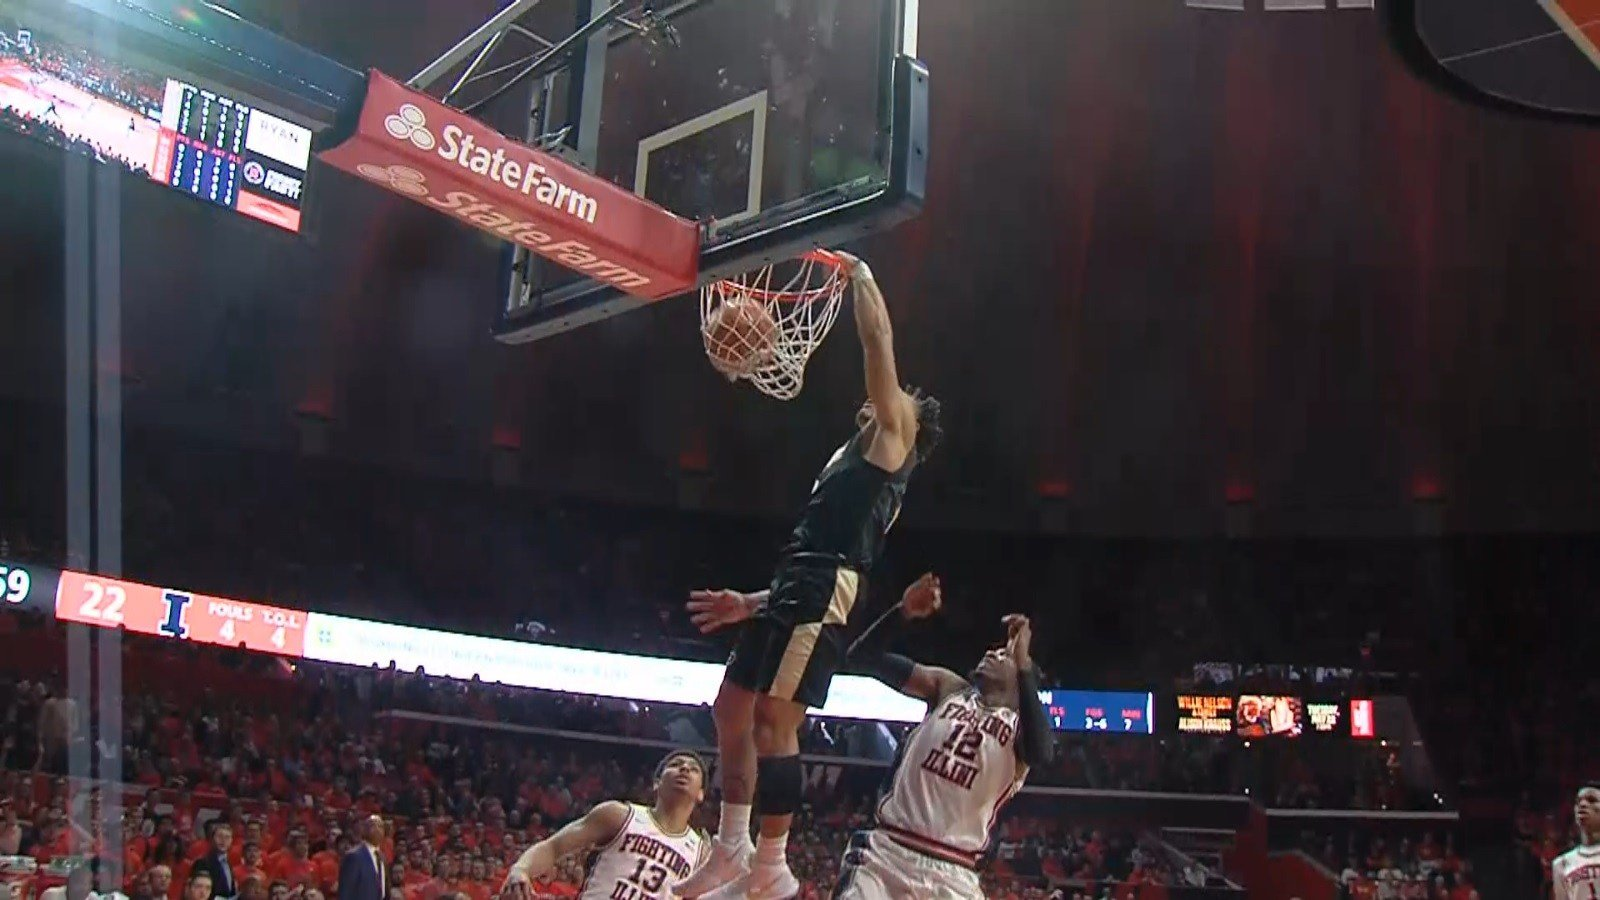 Carsen Edwards Dominates, And Purdue Gets The Road Win